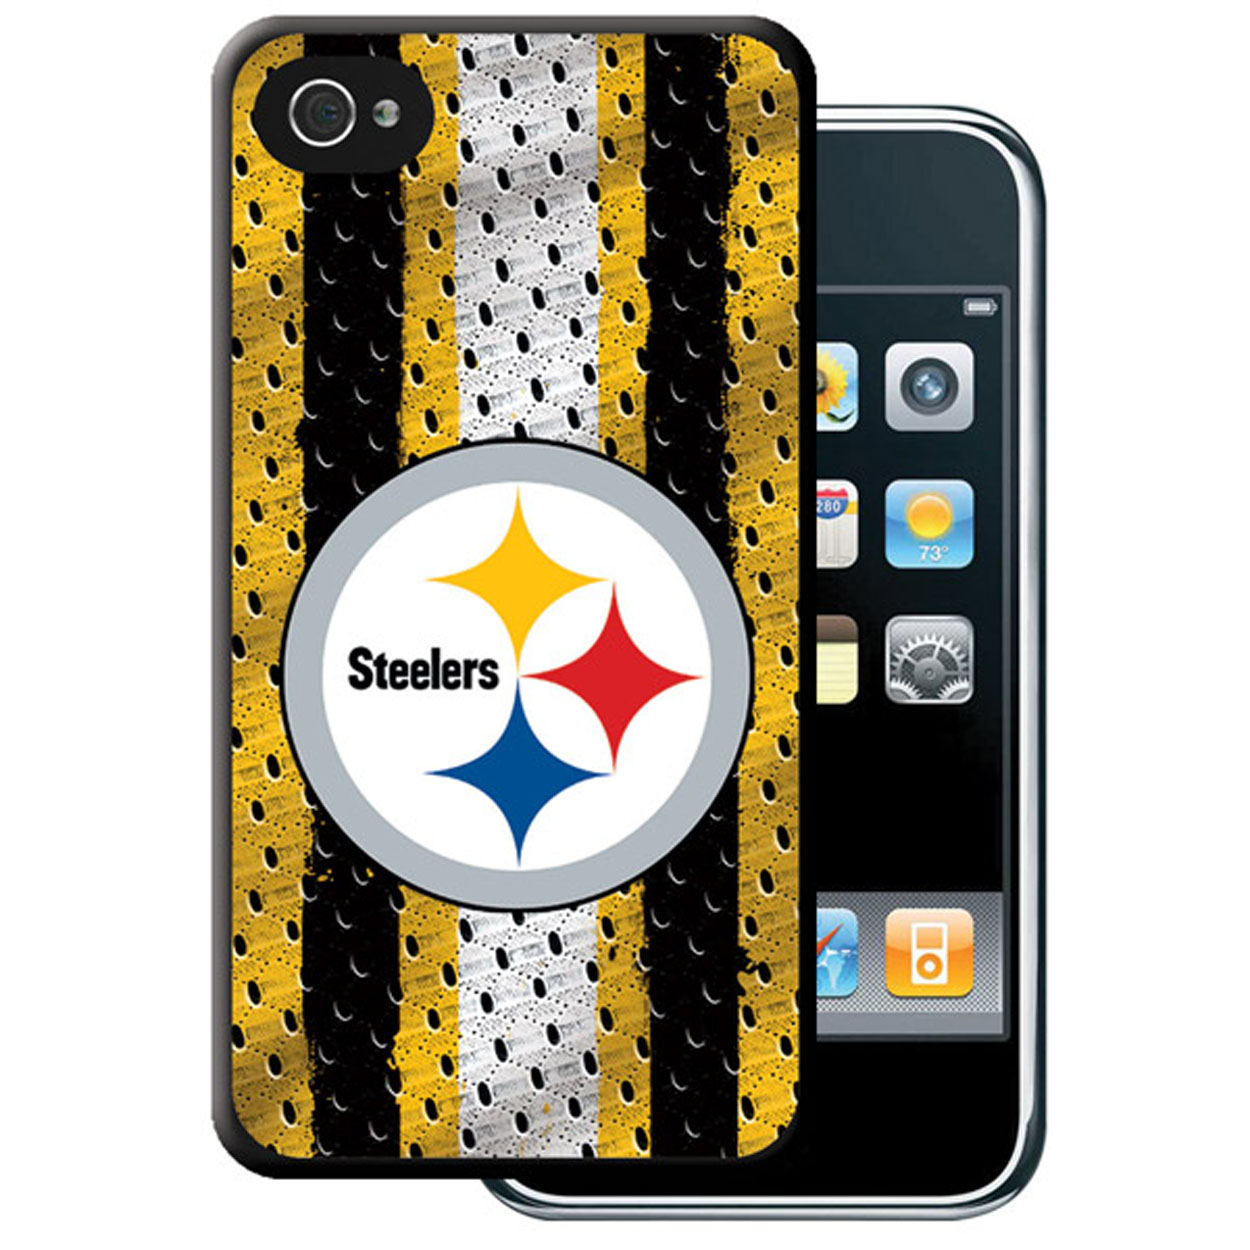 Iphone 4/4S Hard Cover Case - Pittsburgh Steelers